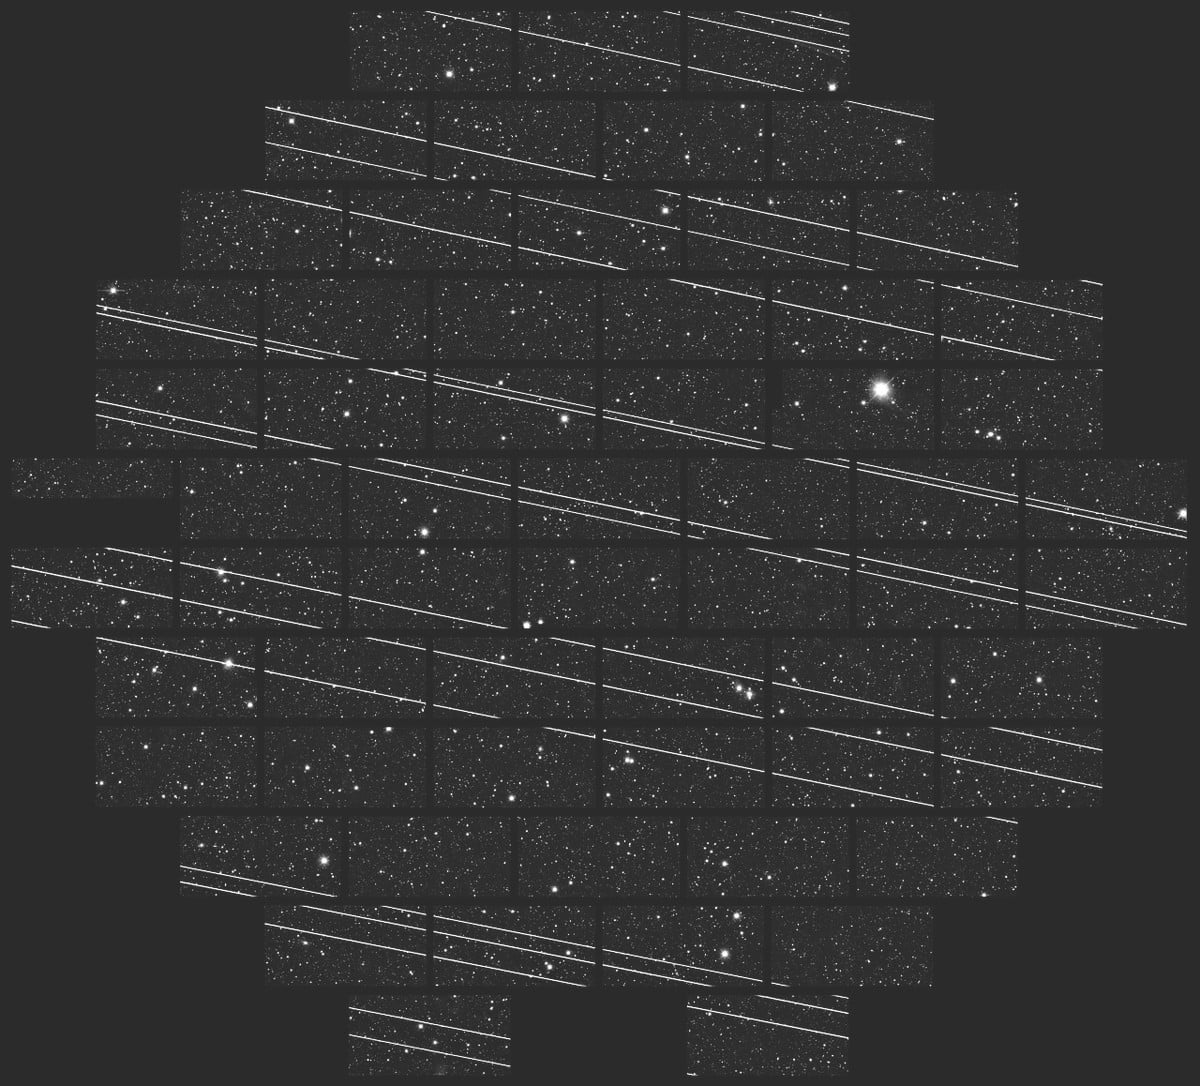 Image showing the disruption of astronomical observations caused by a previous Starlink launch